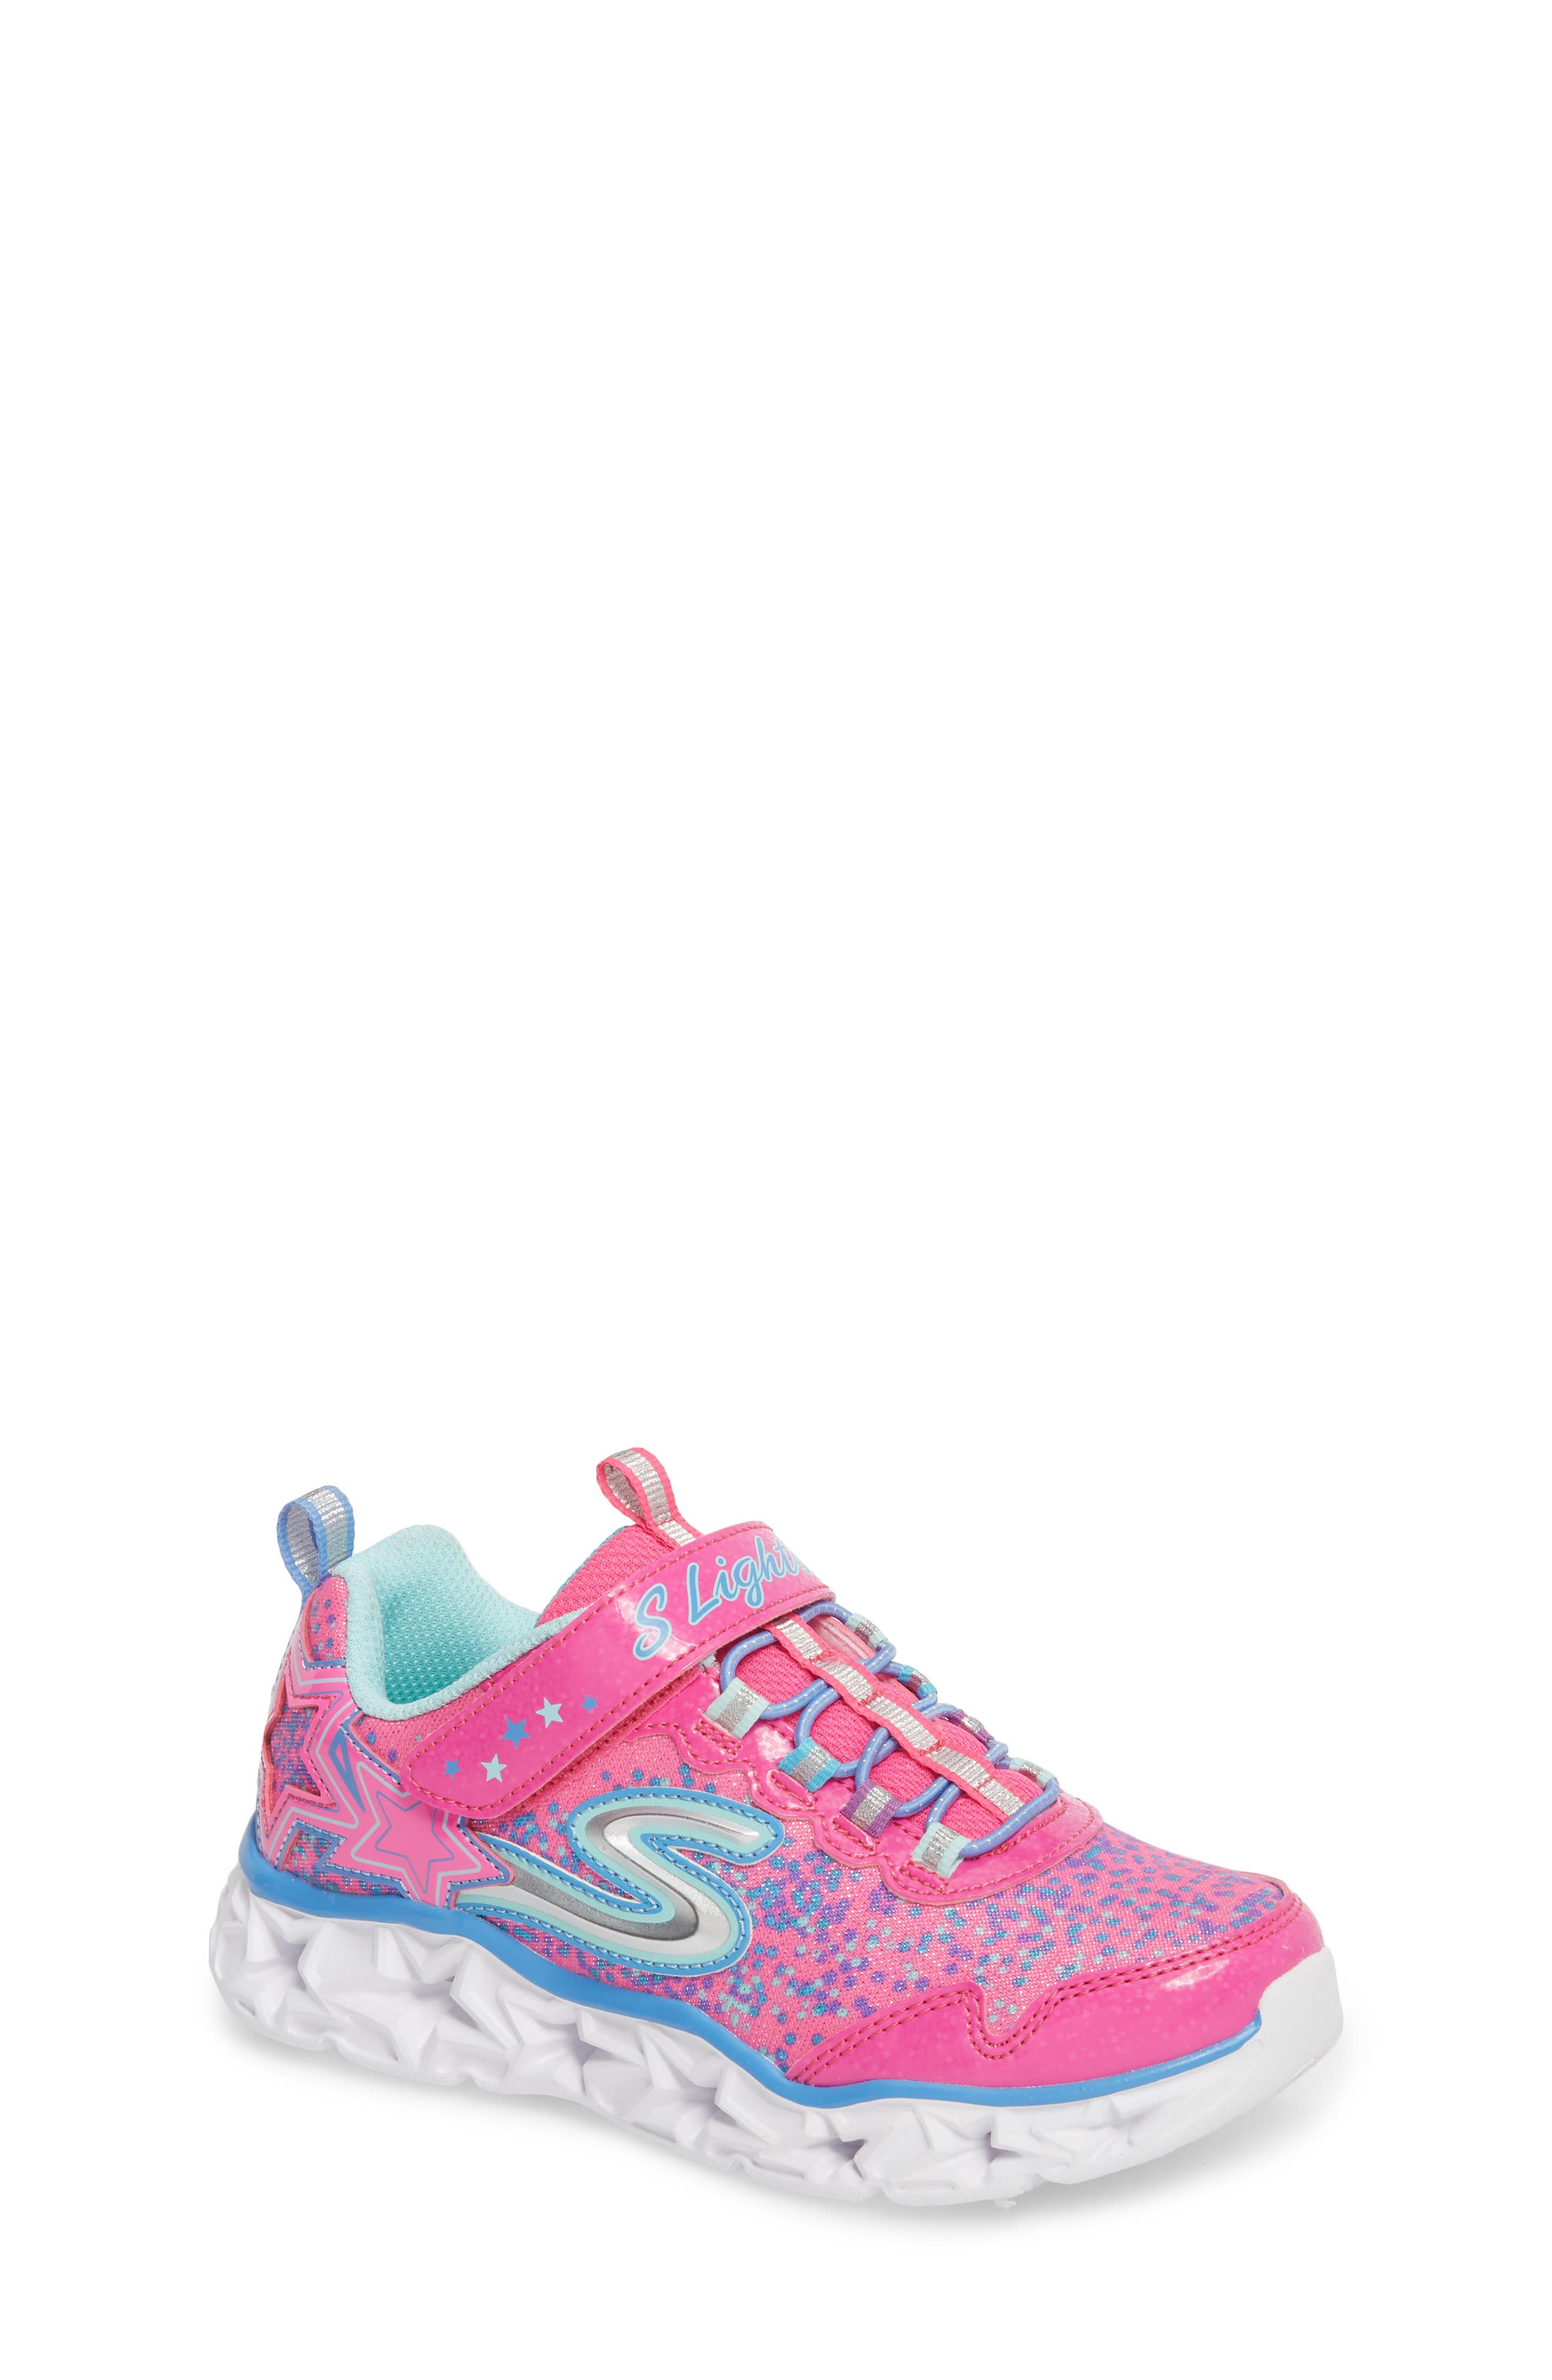 Galaxy Lights Sneakers,                         Main,                         color, Neon Pink/ Multi